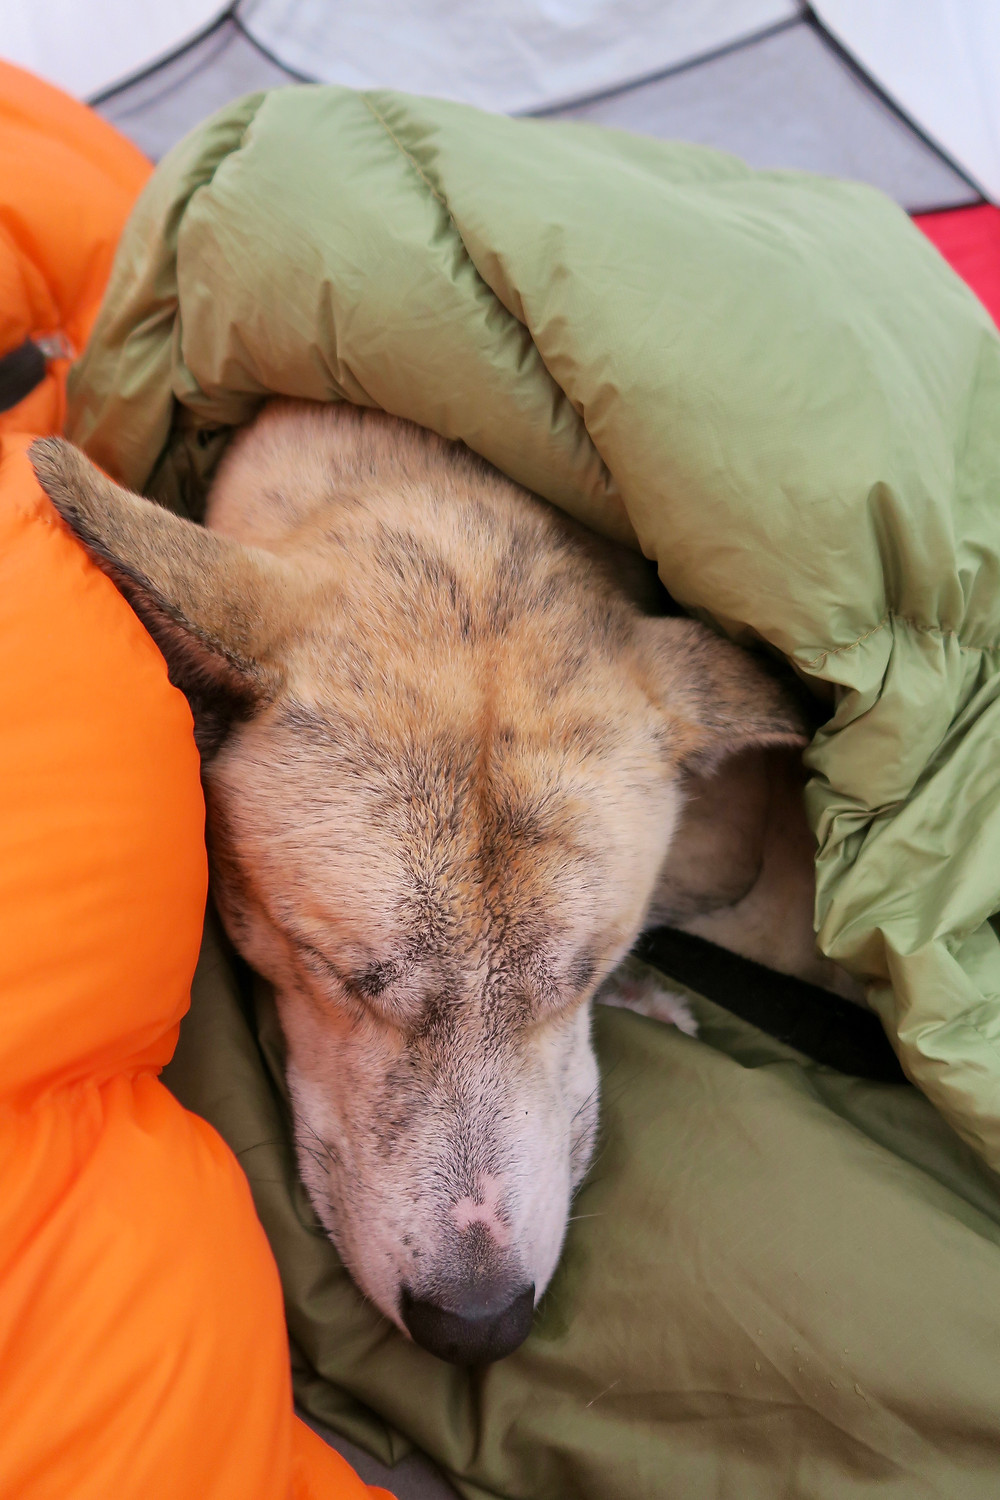 A blond dog is curled up asleep under a green quilt and on top of an orange sleeping bag.